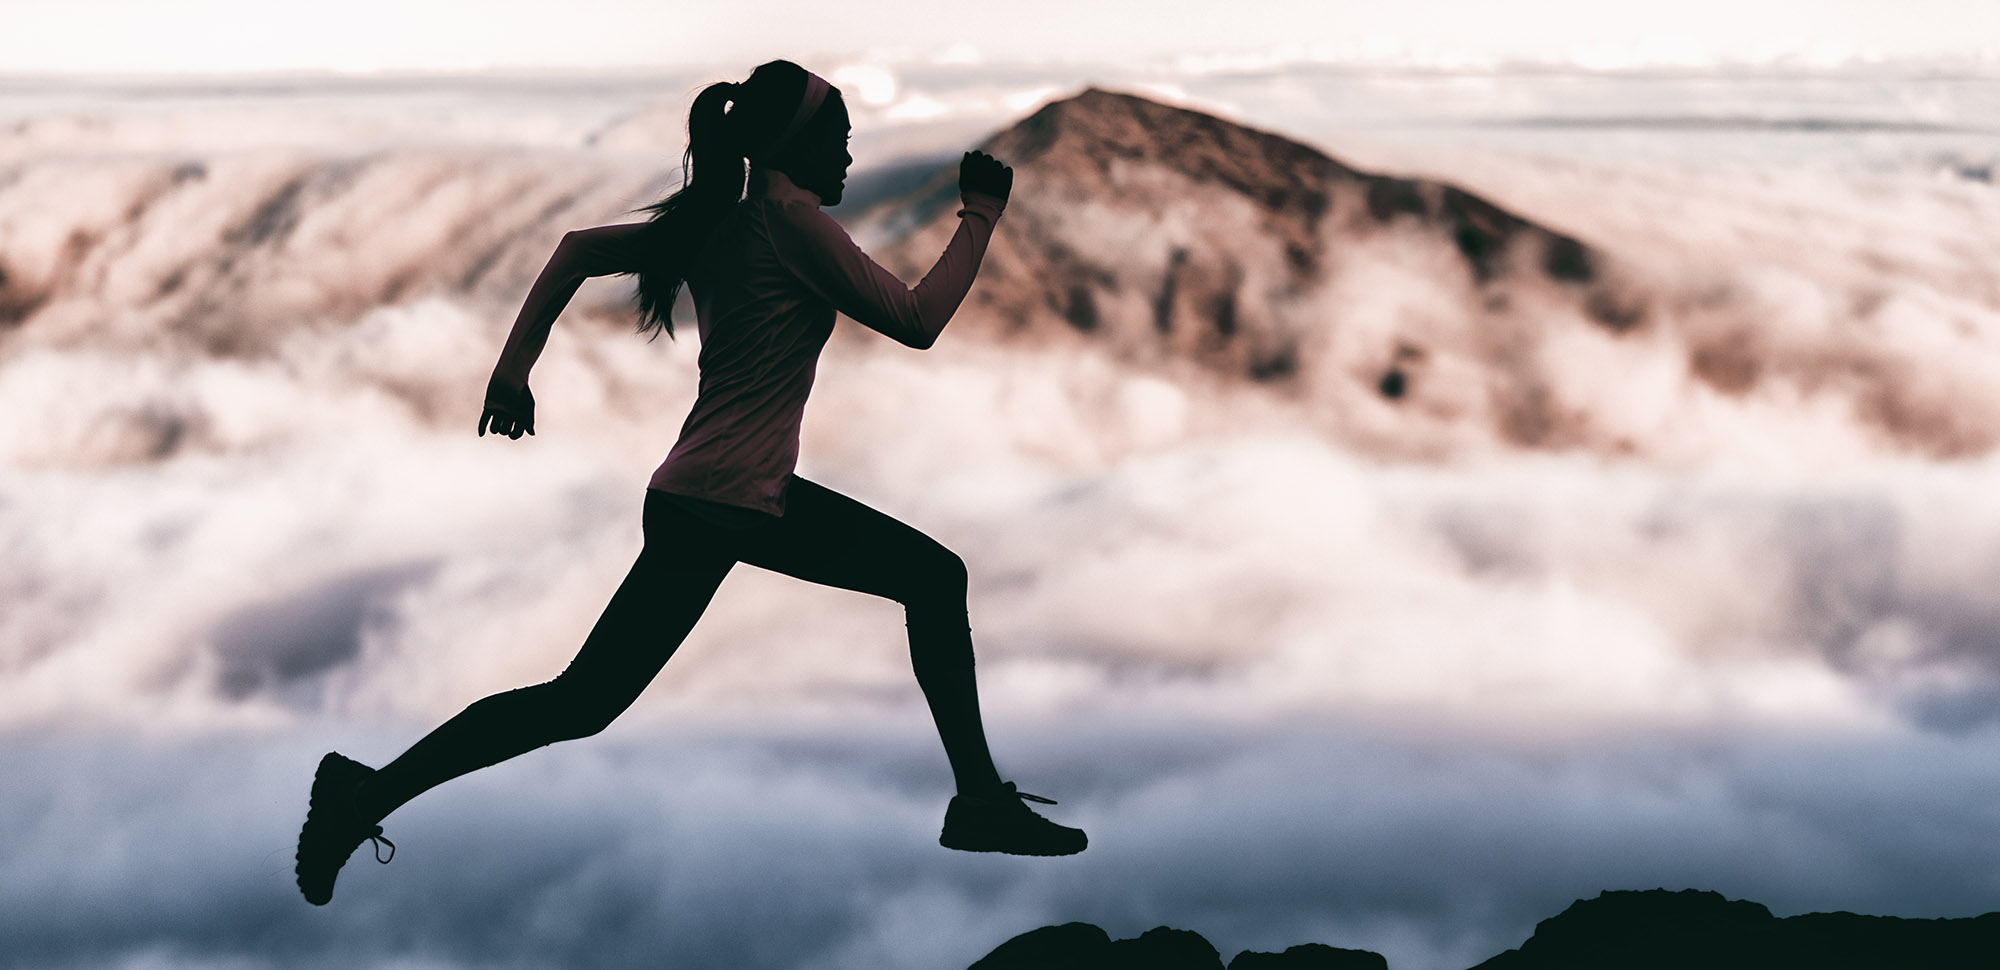 woman running atop a mountain with clouds in the background